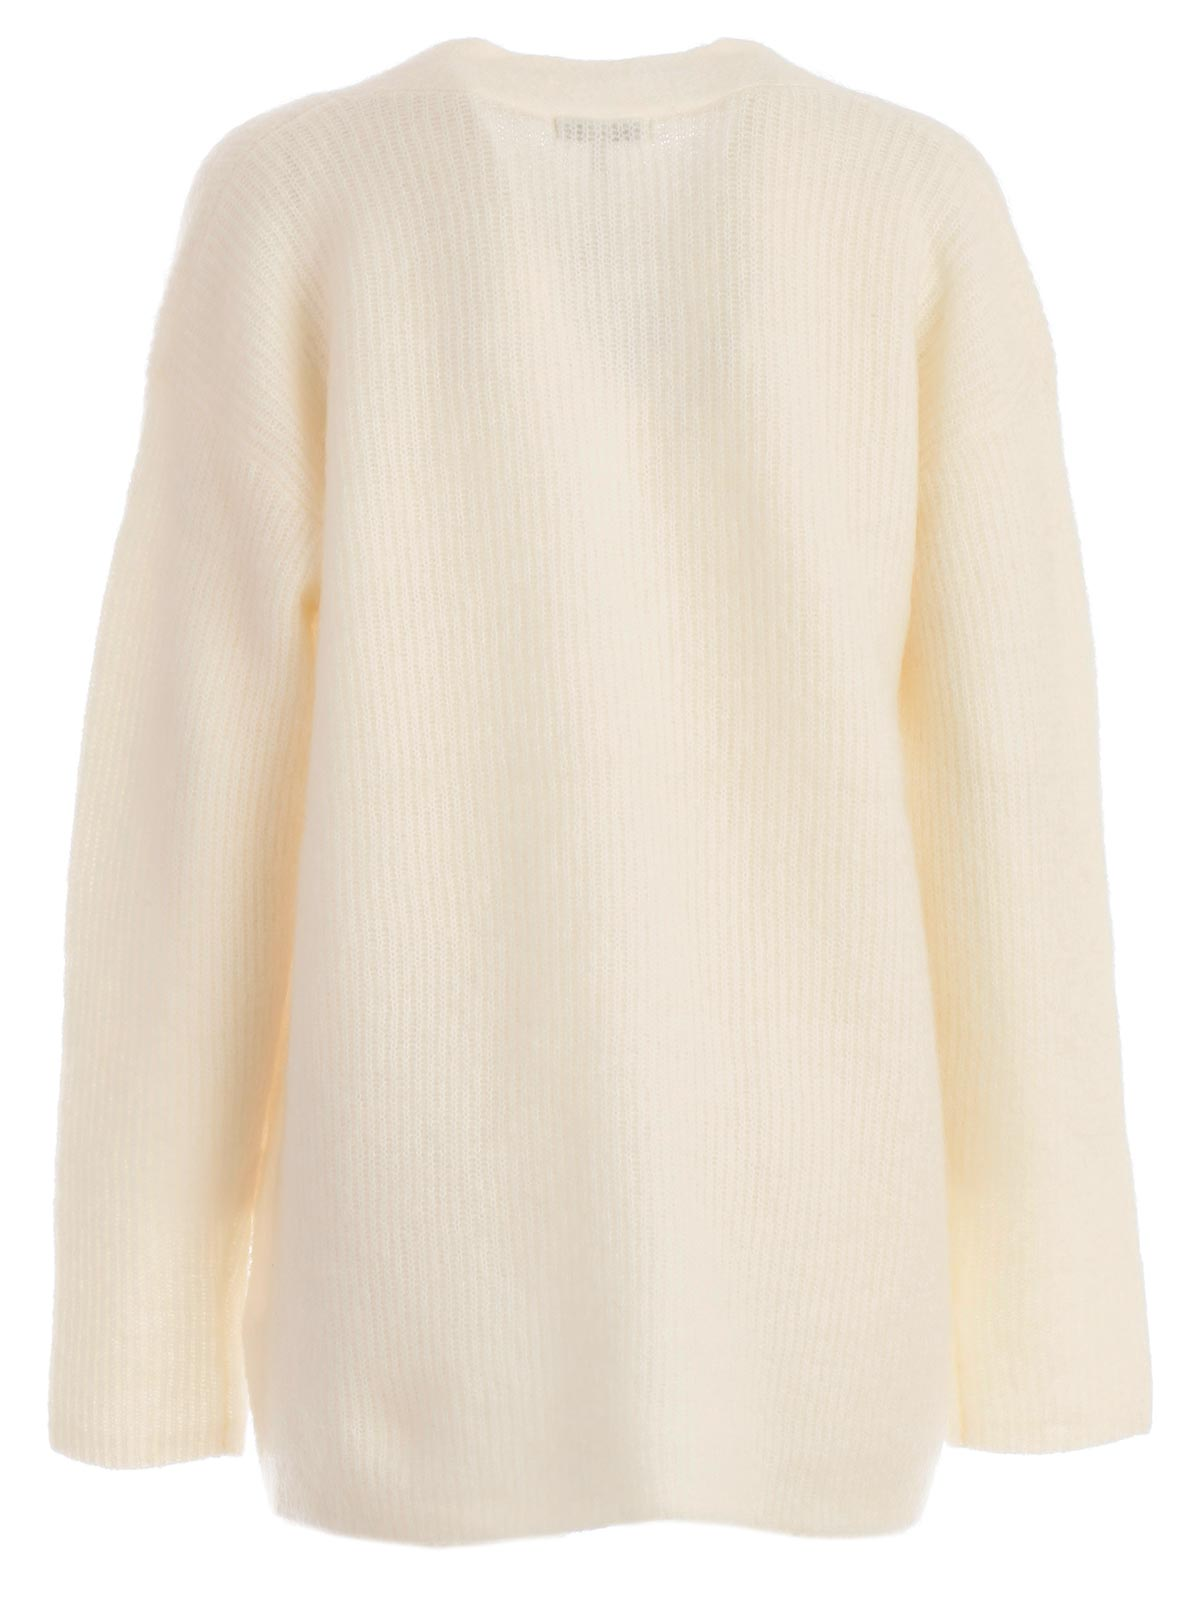 Picture of Ganni Sweater